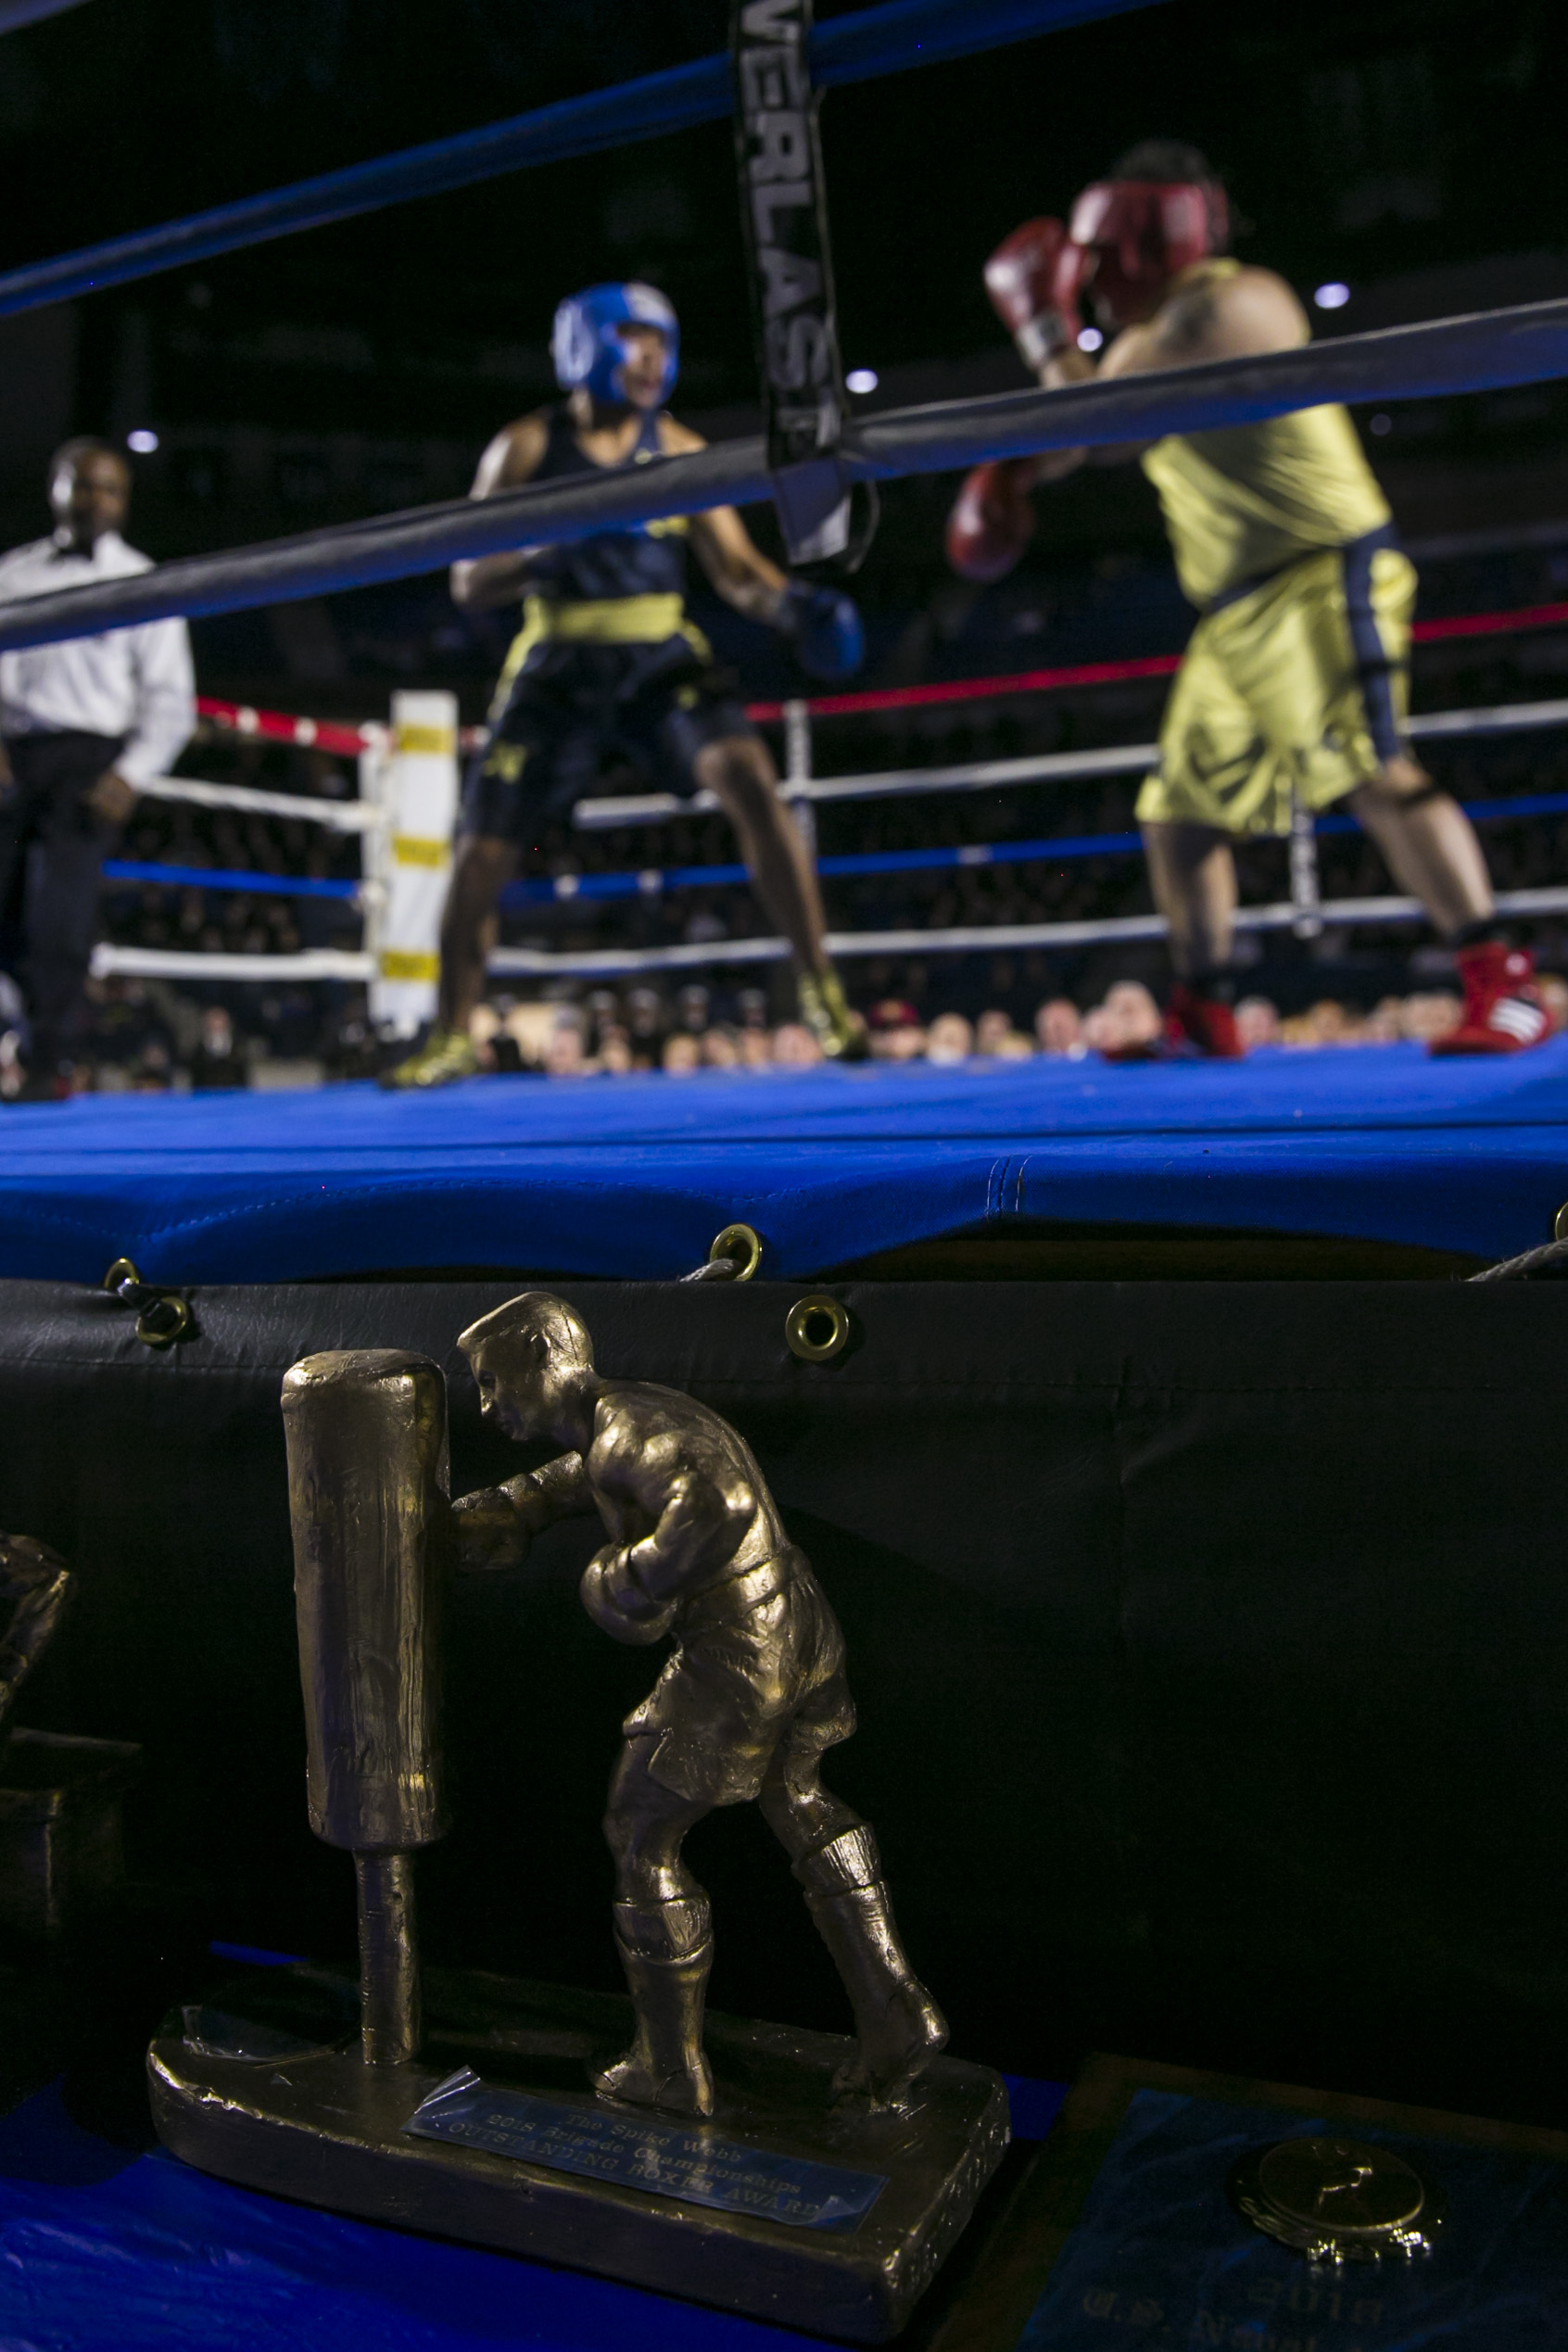 Charles Patterson, left, from Honolulu, HI fights Joey Resendez, right, from El Paso, TX, in the Heavyweight fight during the United States Naval Academy's 77th Brigade Boxing Championships held on Feb. 23, 2018. Patterson won the fight. (Alan Lessig/Staff)